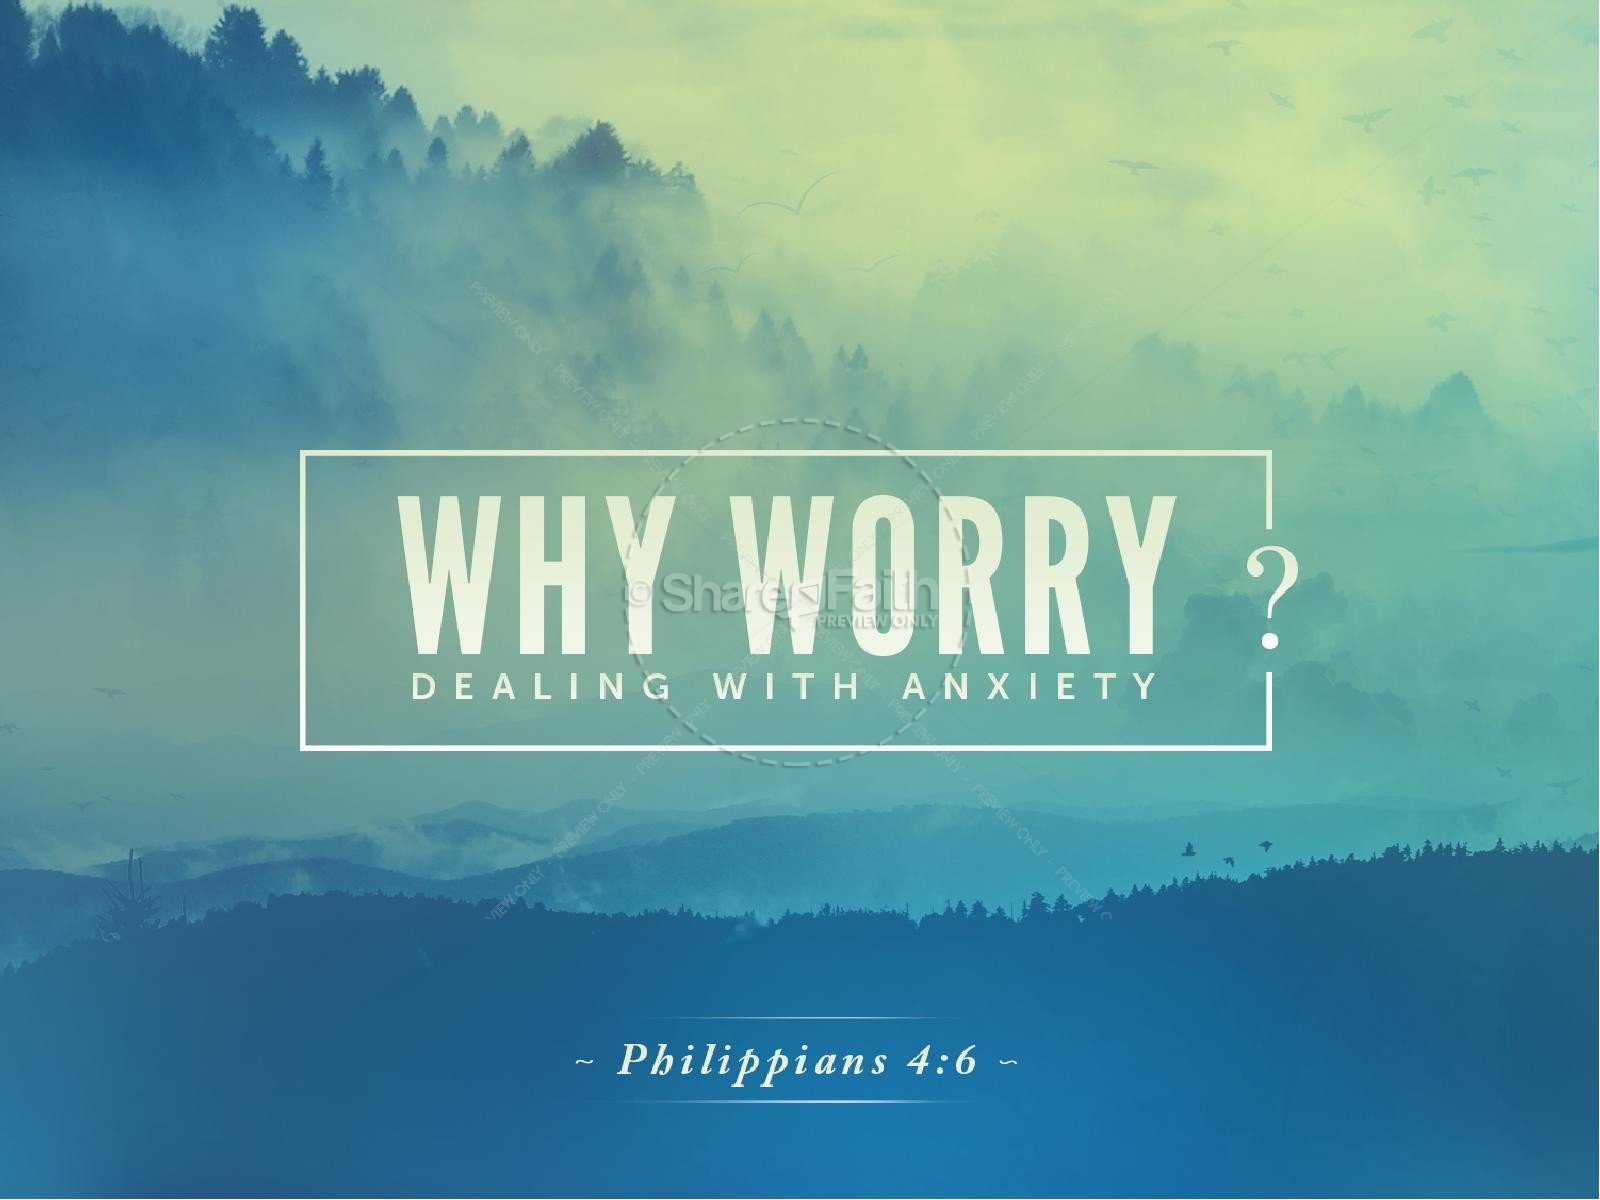 why worry sermon powerpoint | powerpoint sermons, Modern powerpoint